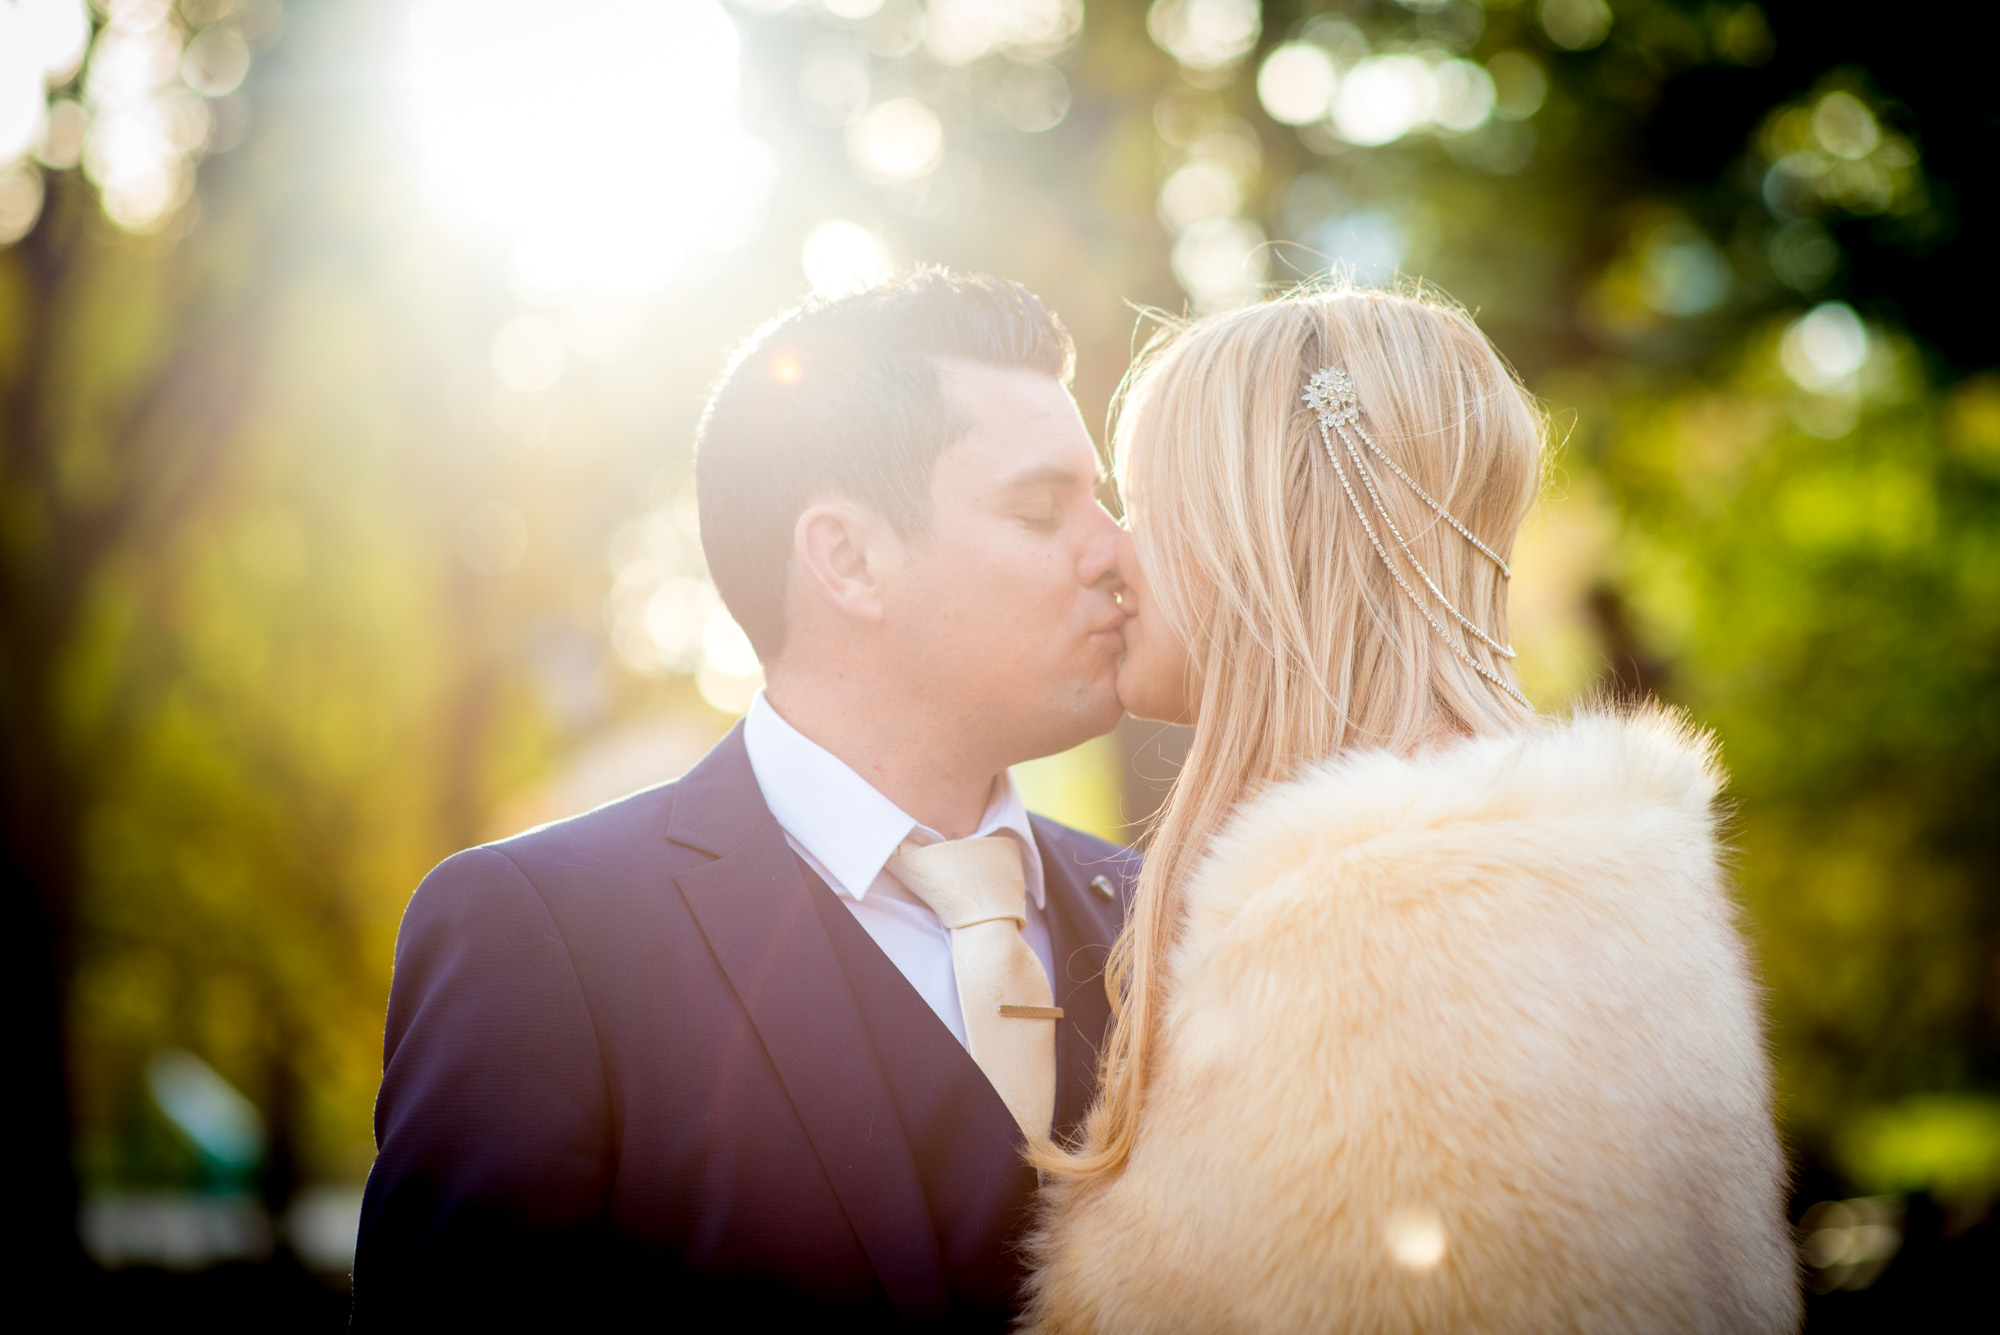 Intimate Couple's Portrait by Brian Friedman Photography.